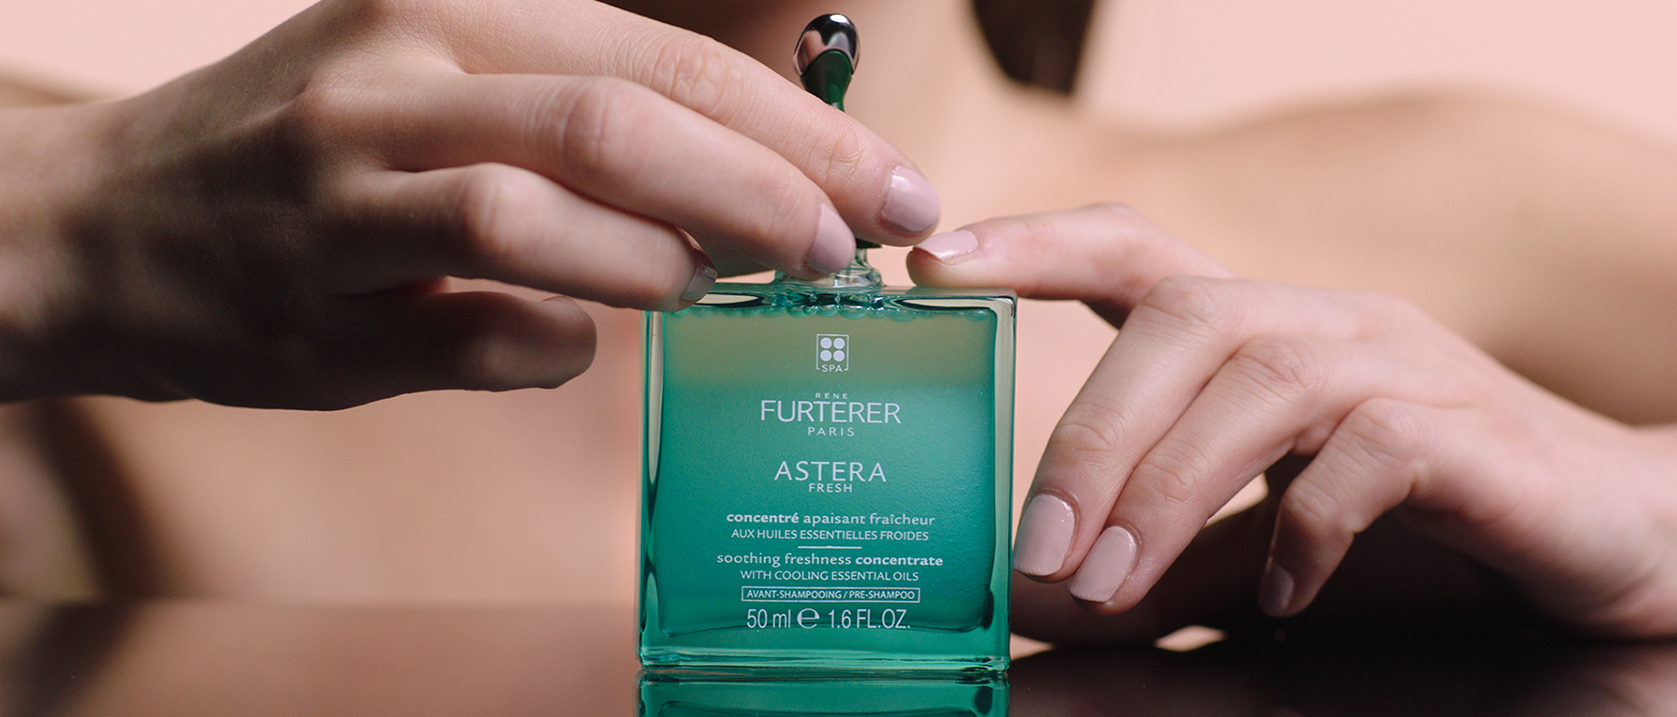 ASTERA FRESH - Soothing freshness concentrate - Irritated scalp| René Furterer